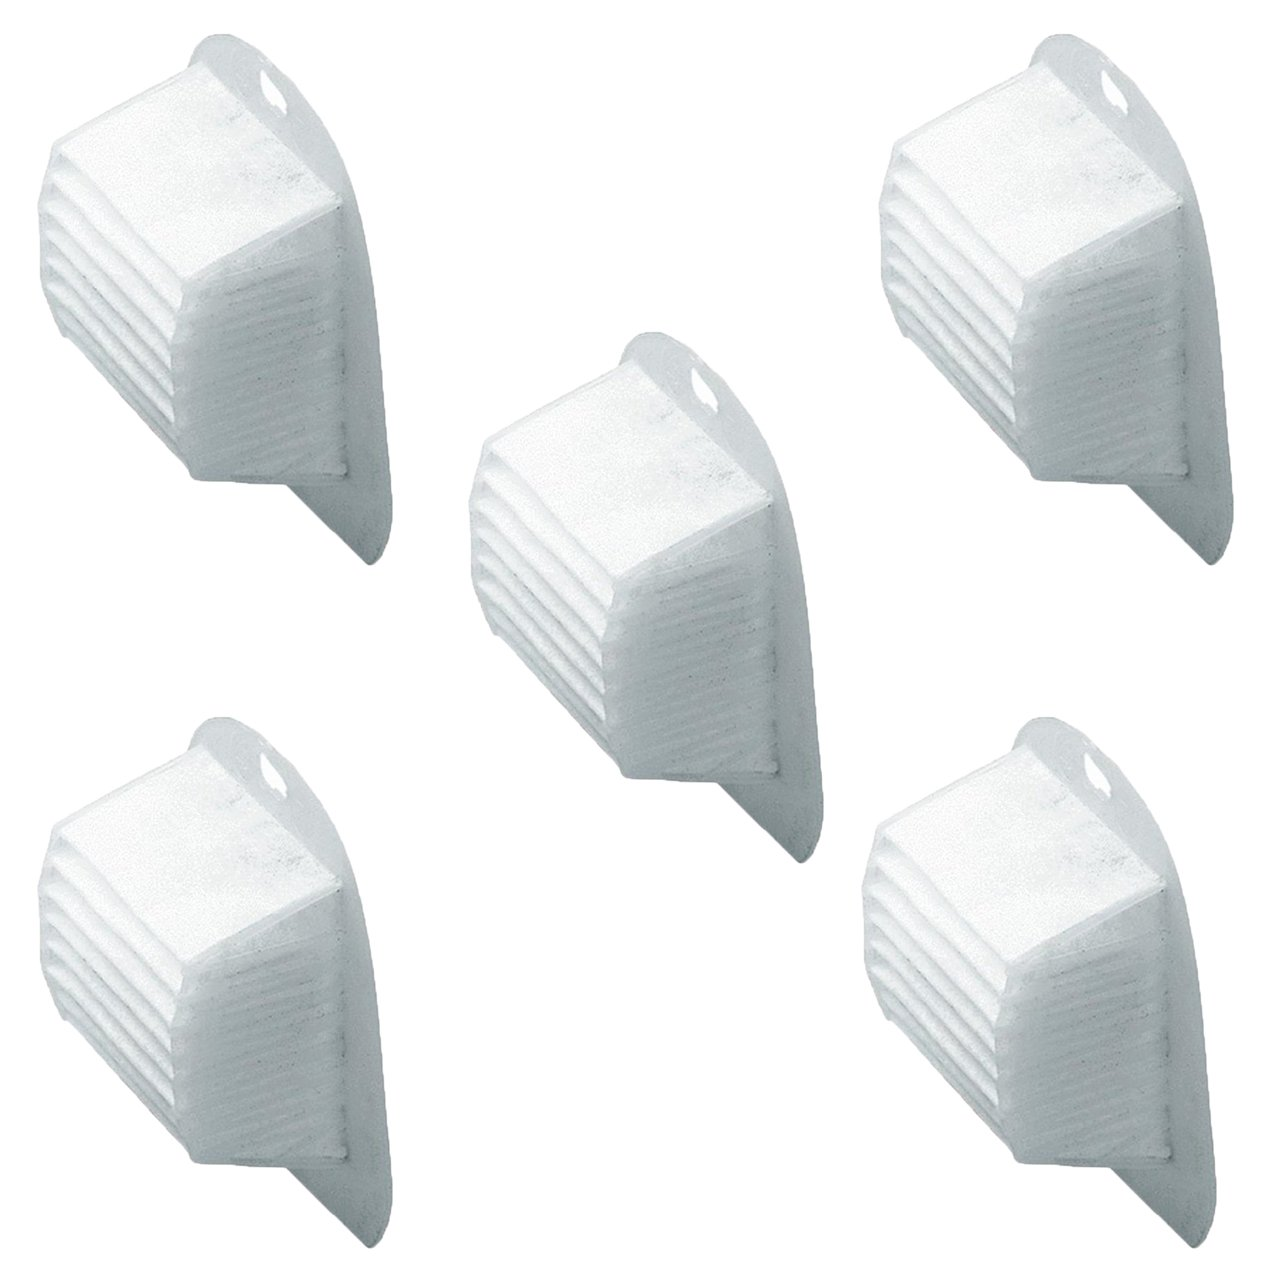 Black and Decker VF20 Double Action DustBuster Filter Set 5-Pack by BLACK+DECKER